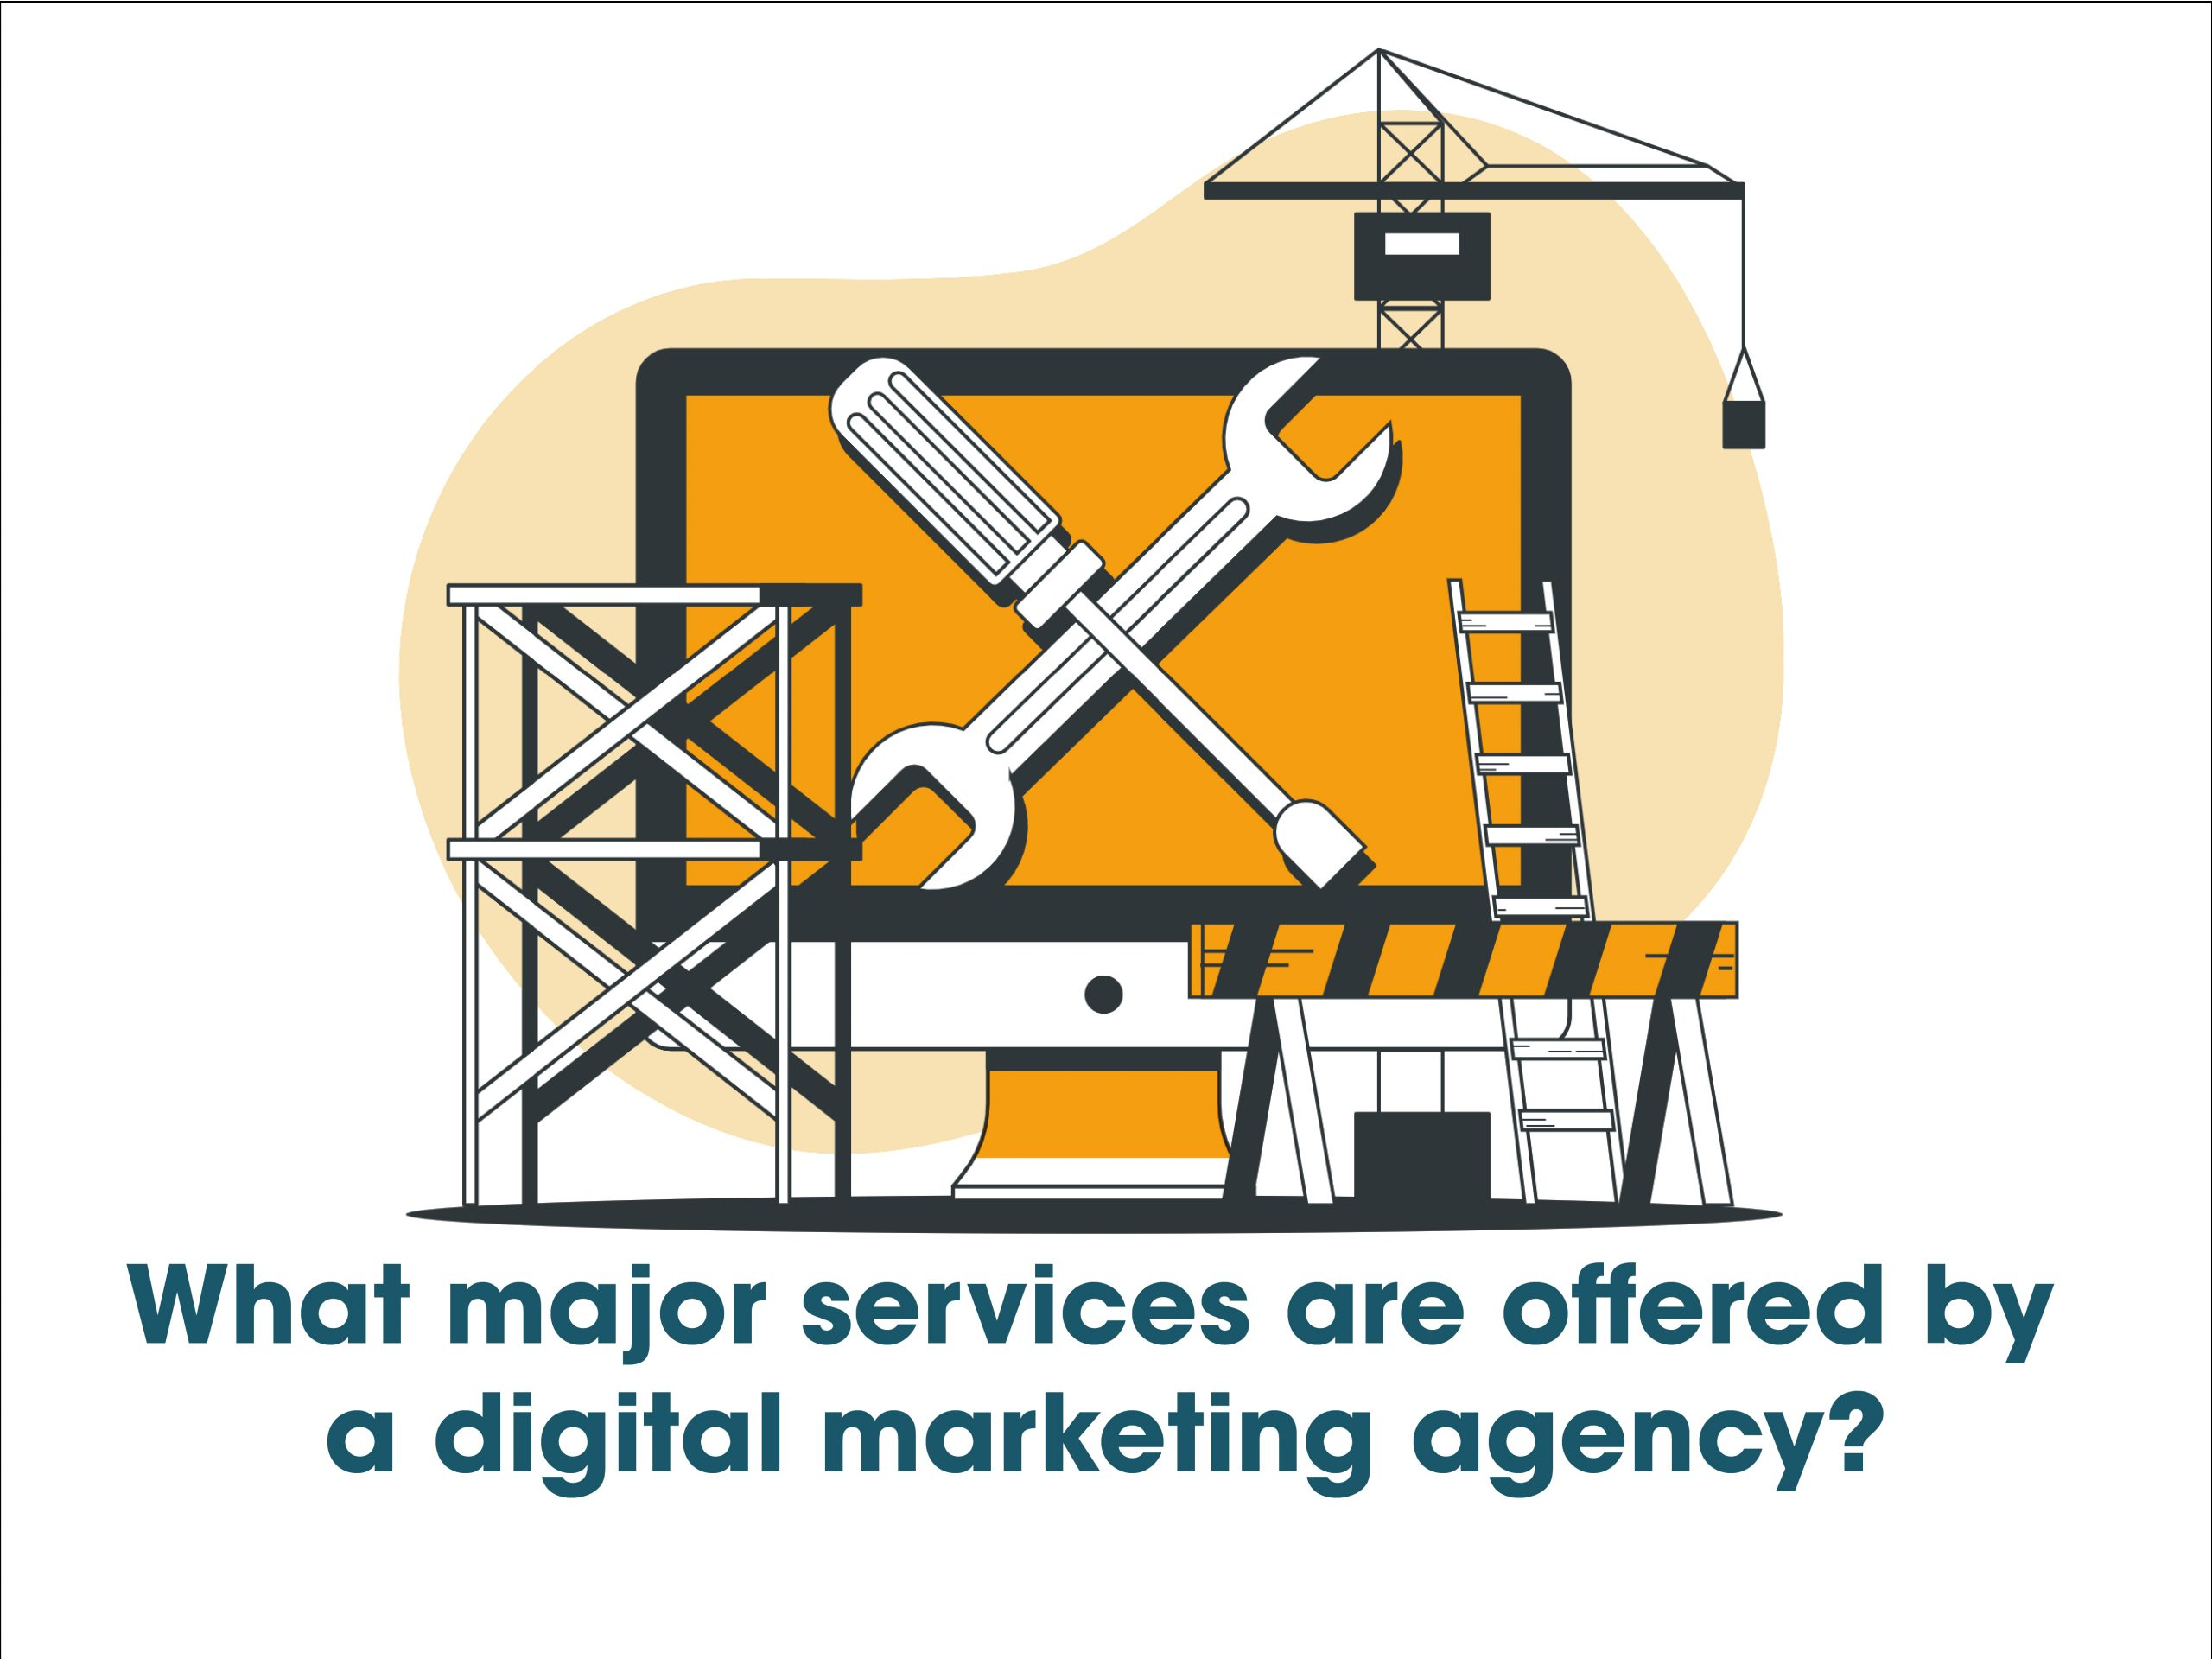 What major services are offered by a digital marketing agency